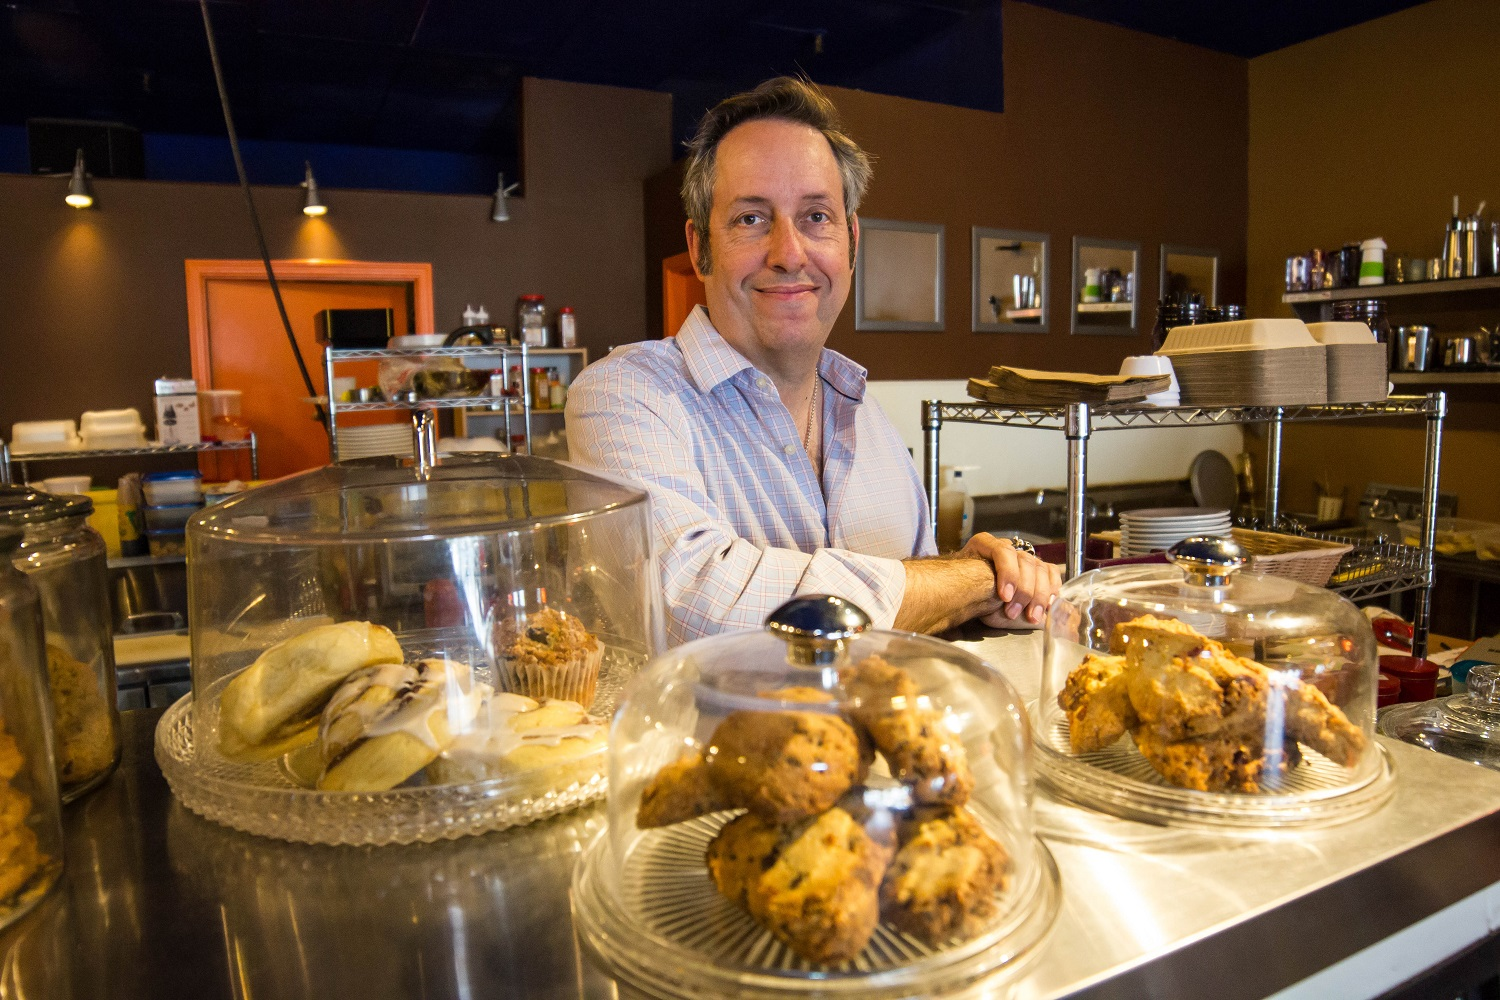 Coffee entrepreneur Steve Schmidt with just a few of the tasty treats he offers--with an even wider selection on the way. Wrangler News photo by Alex J. Walker